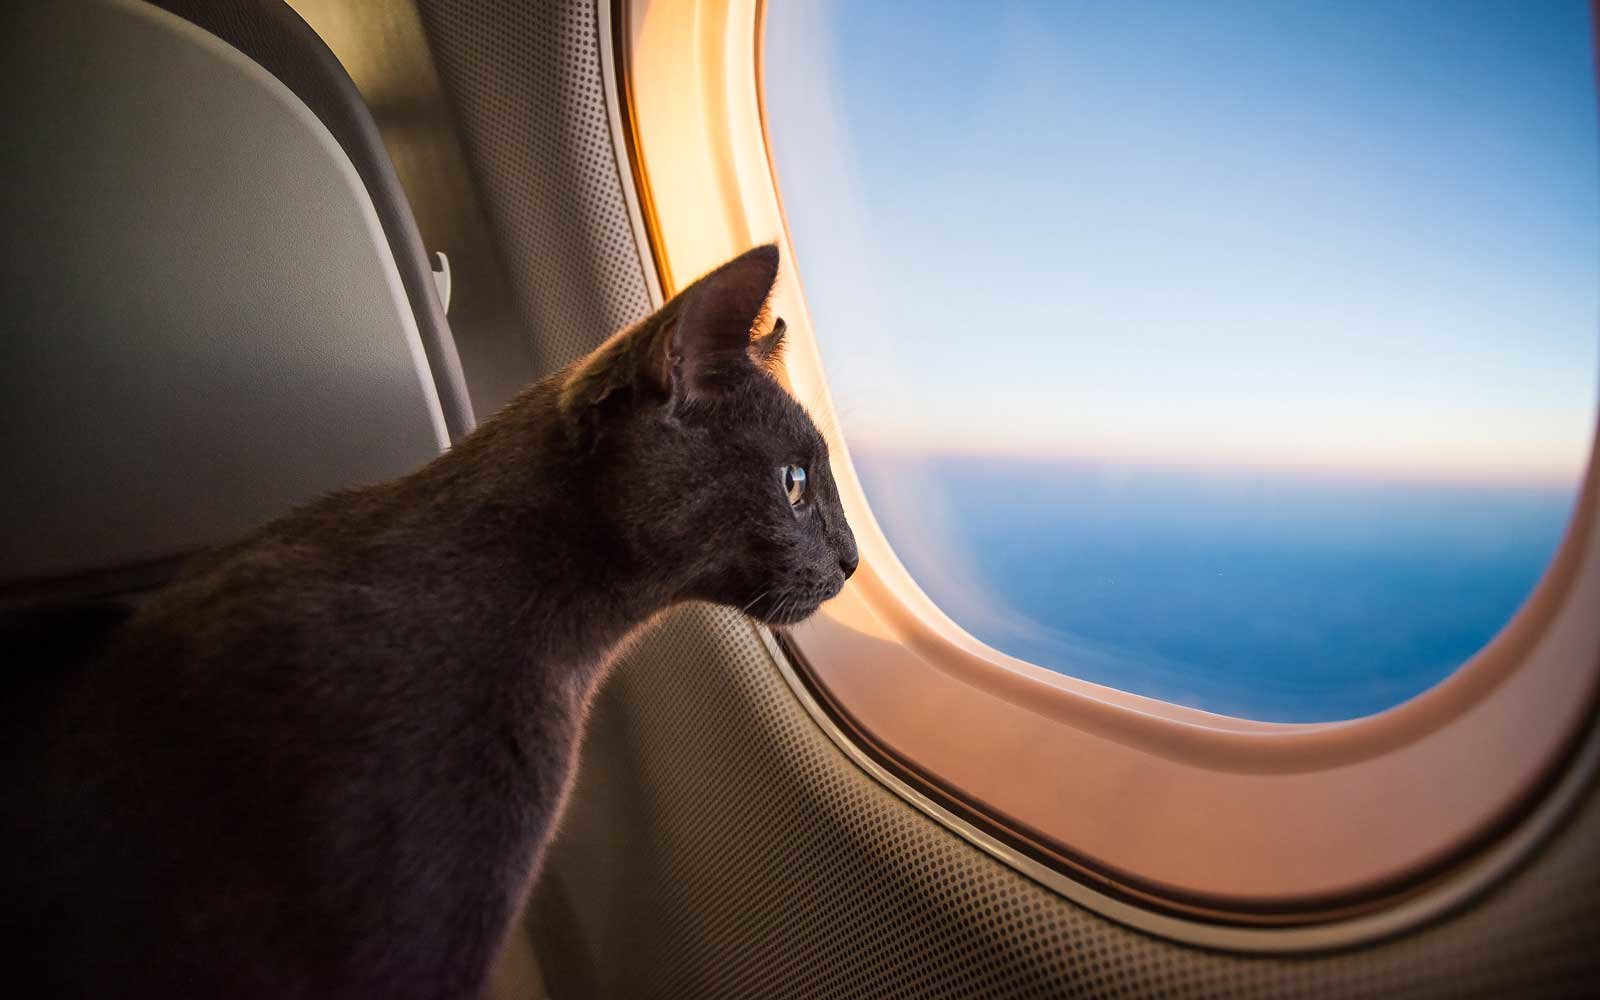 Cat on an airplane